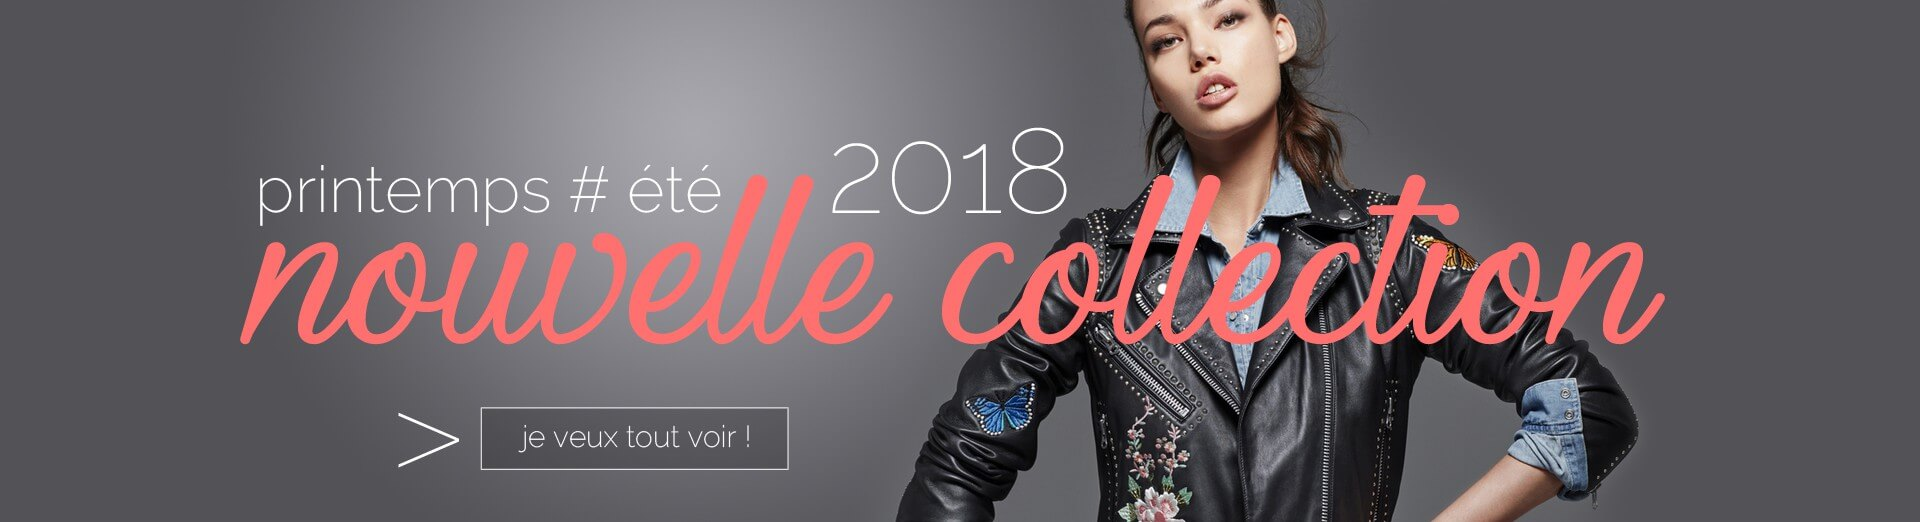 Printemps Eté 2018 - Nouvelle Collection